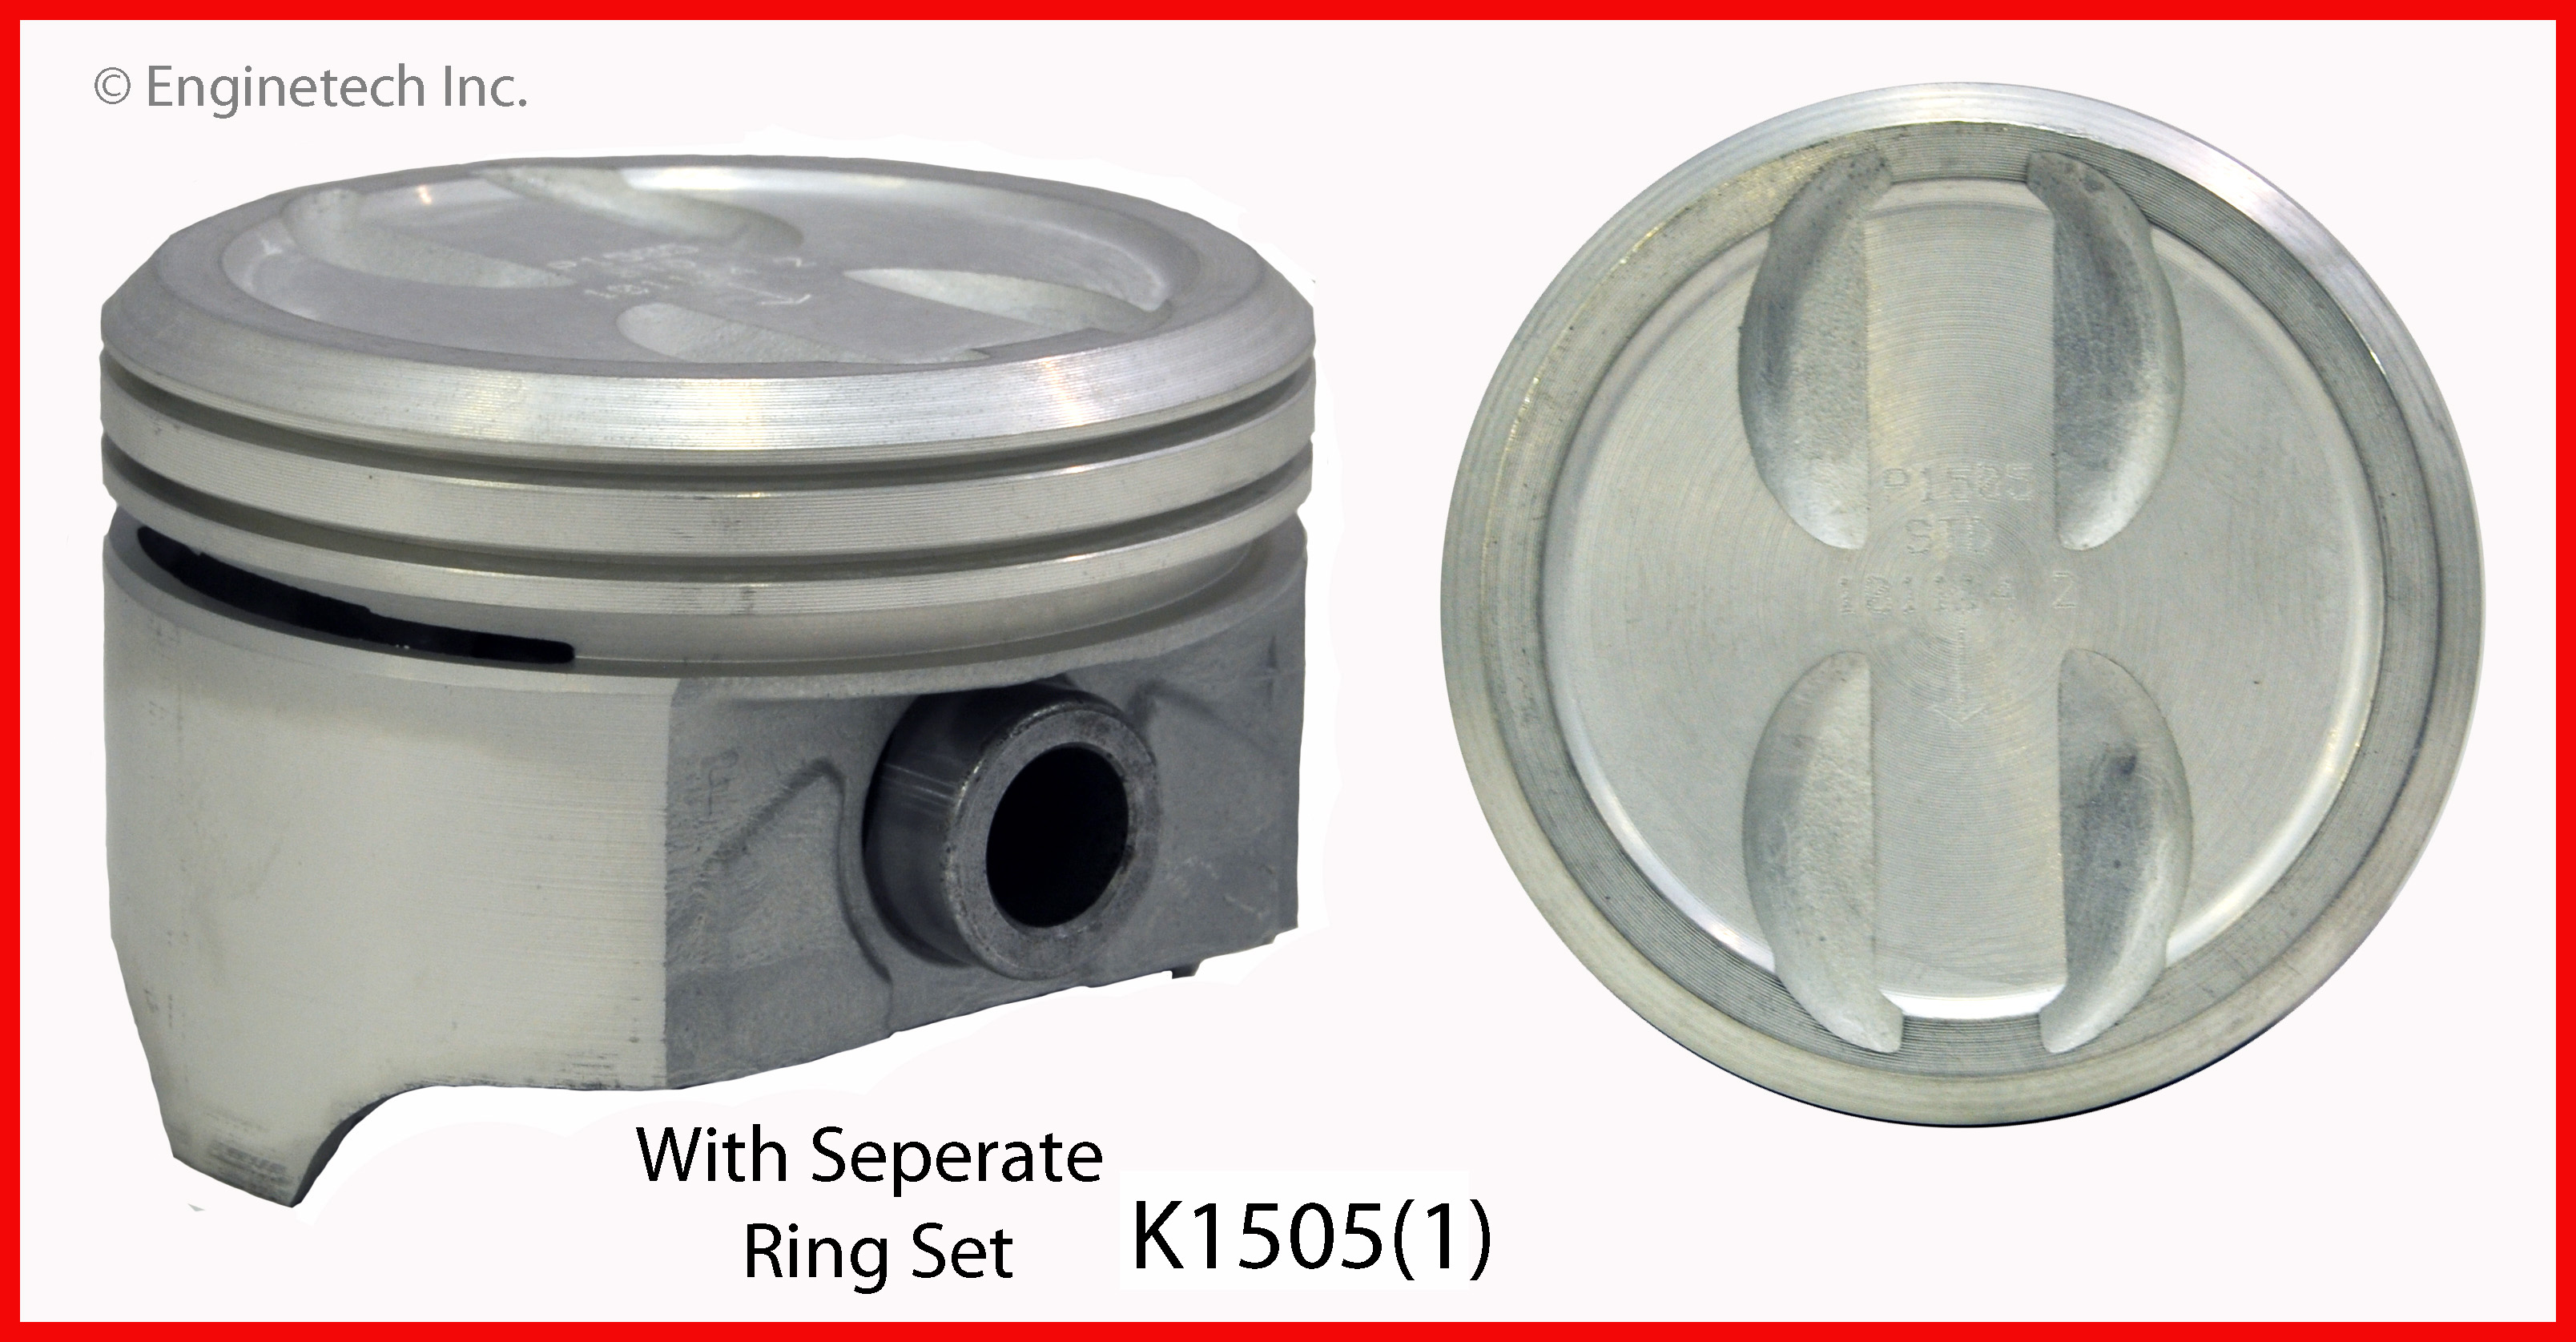 K1505(1) Piston And Ring Kit Enginetech